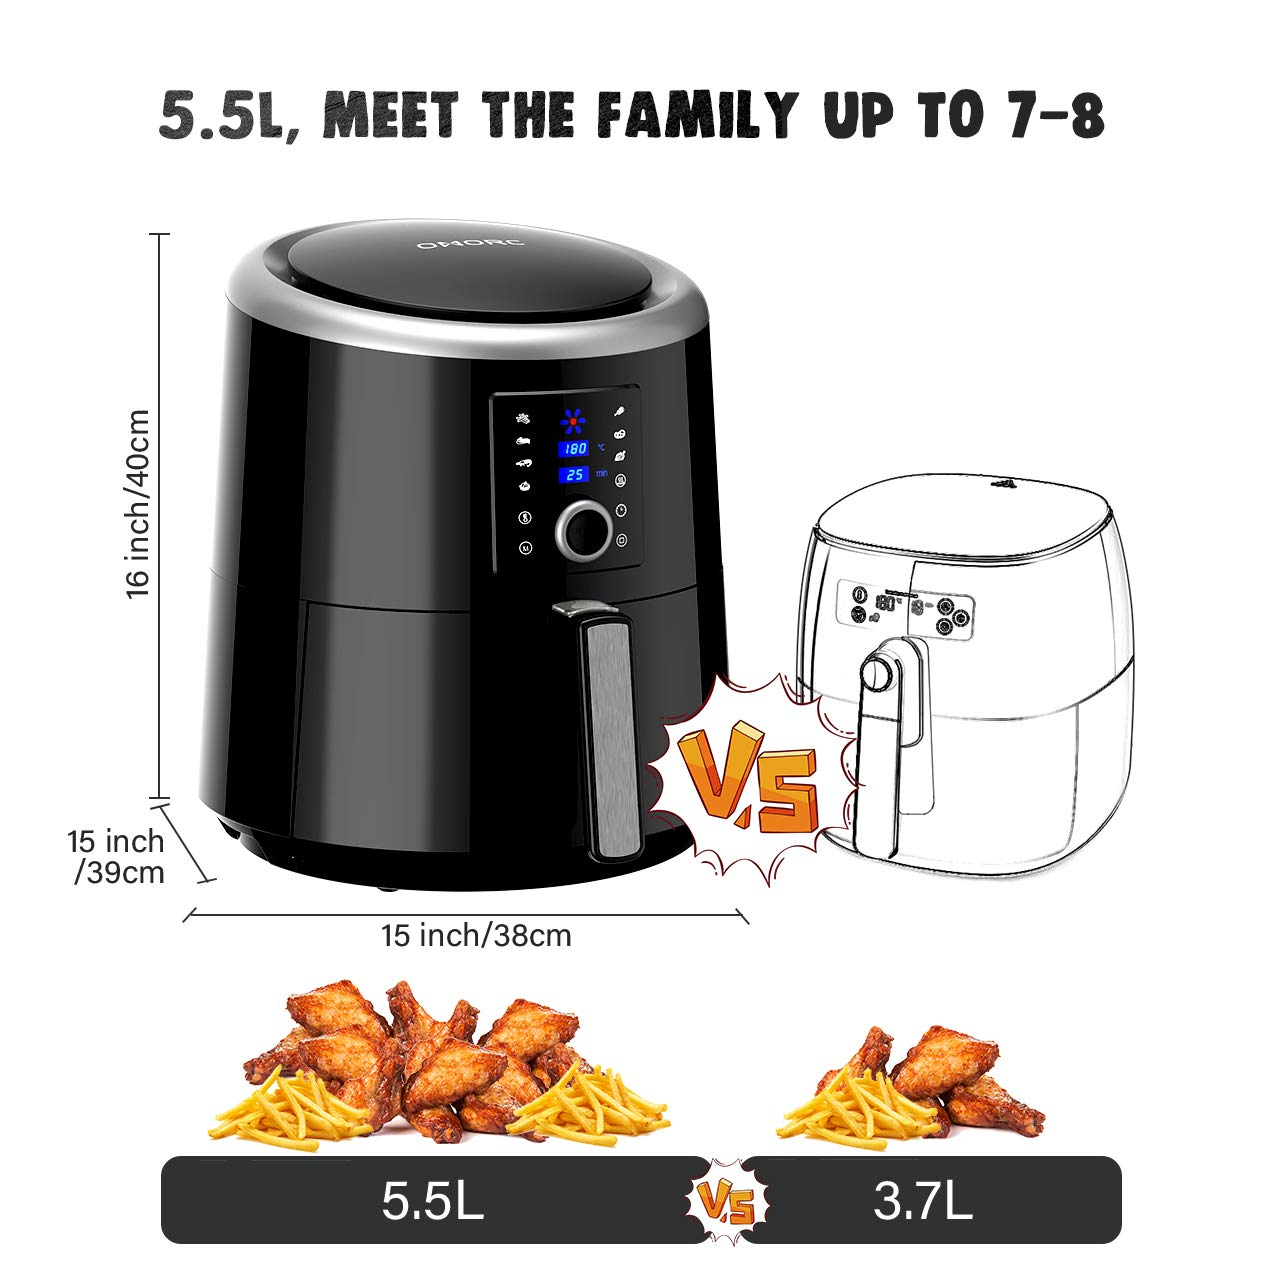 OMORC 3.5L Healthy Digital Air Fryer 80/% Less Fat Oil Free|Suitable for 3-4 People|30 Mins Rapid Cook|7 Smart Presets|120 Mins Heat Preservation|Manual Timer/& Temperature Air Fryer with Recipe Book